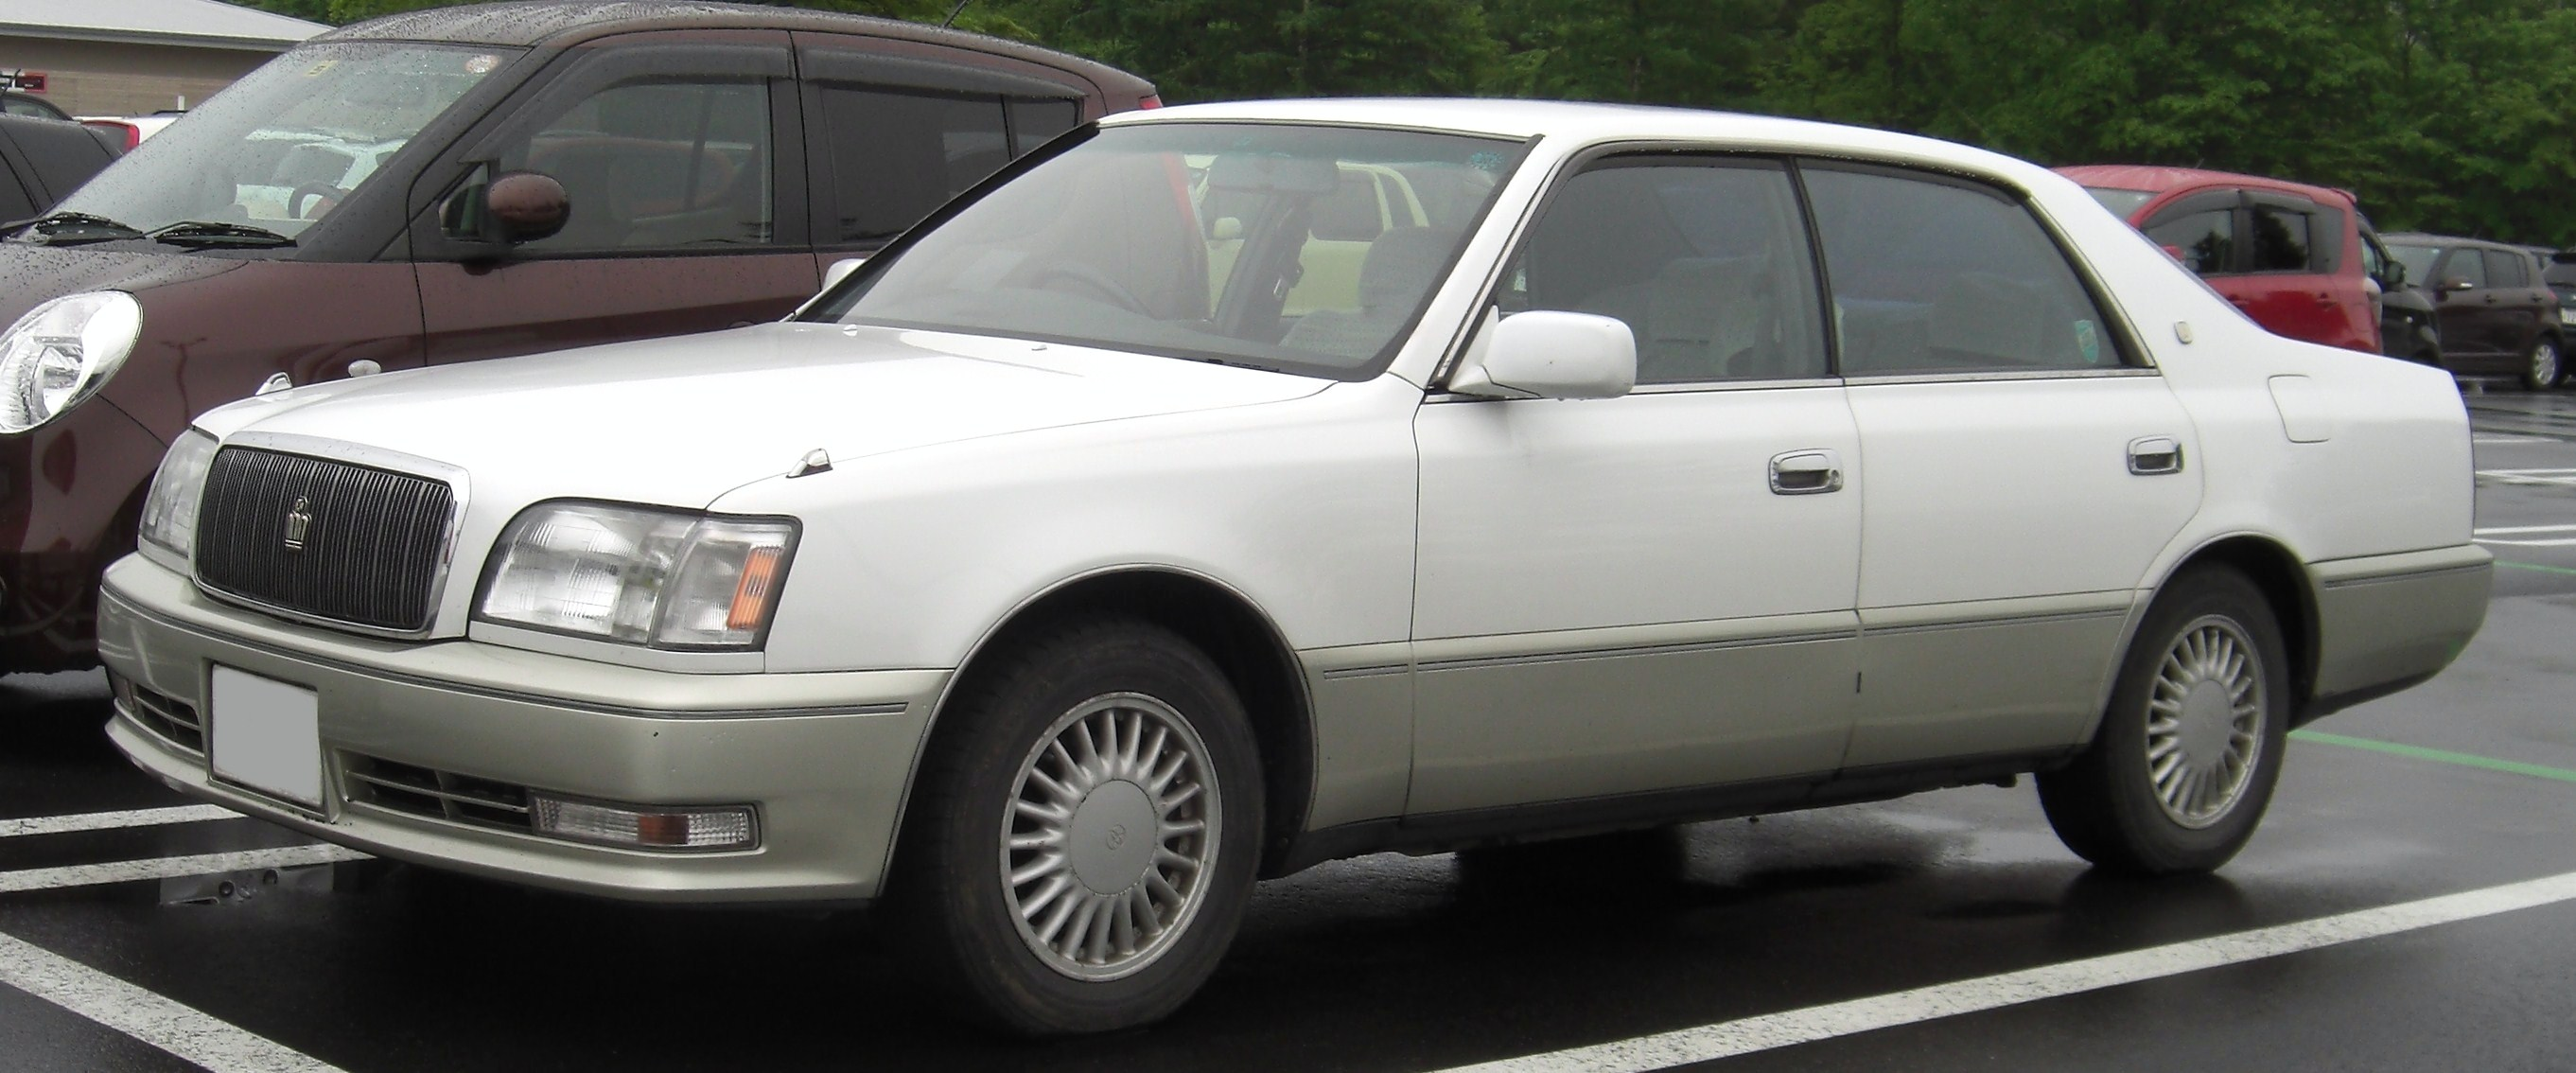 Toyota Crown #13